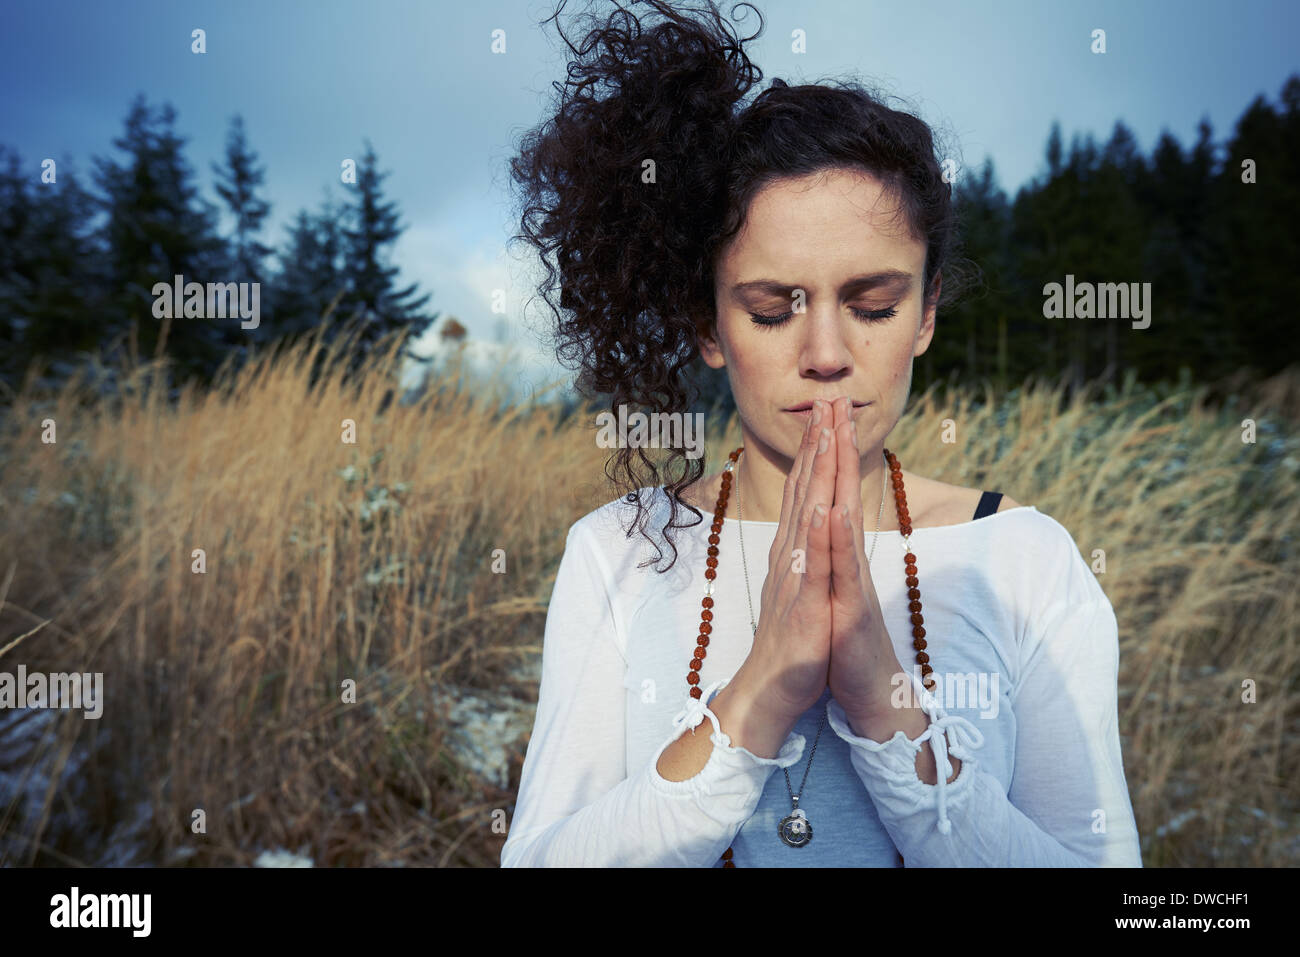 Mid adult woman meditating in forest - Stock Image